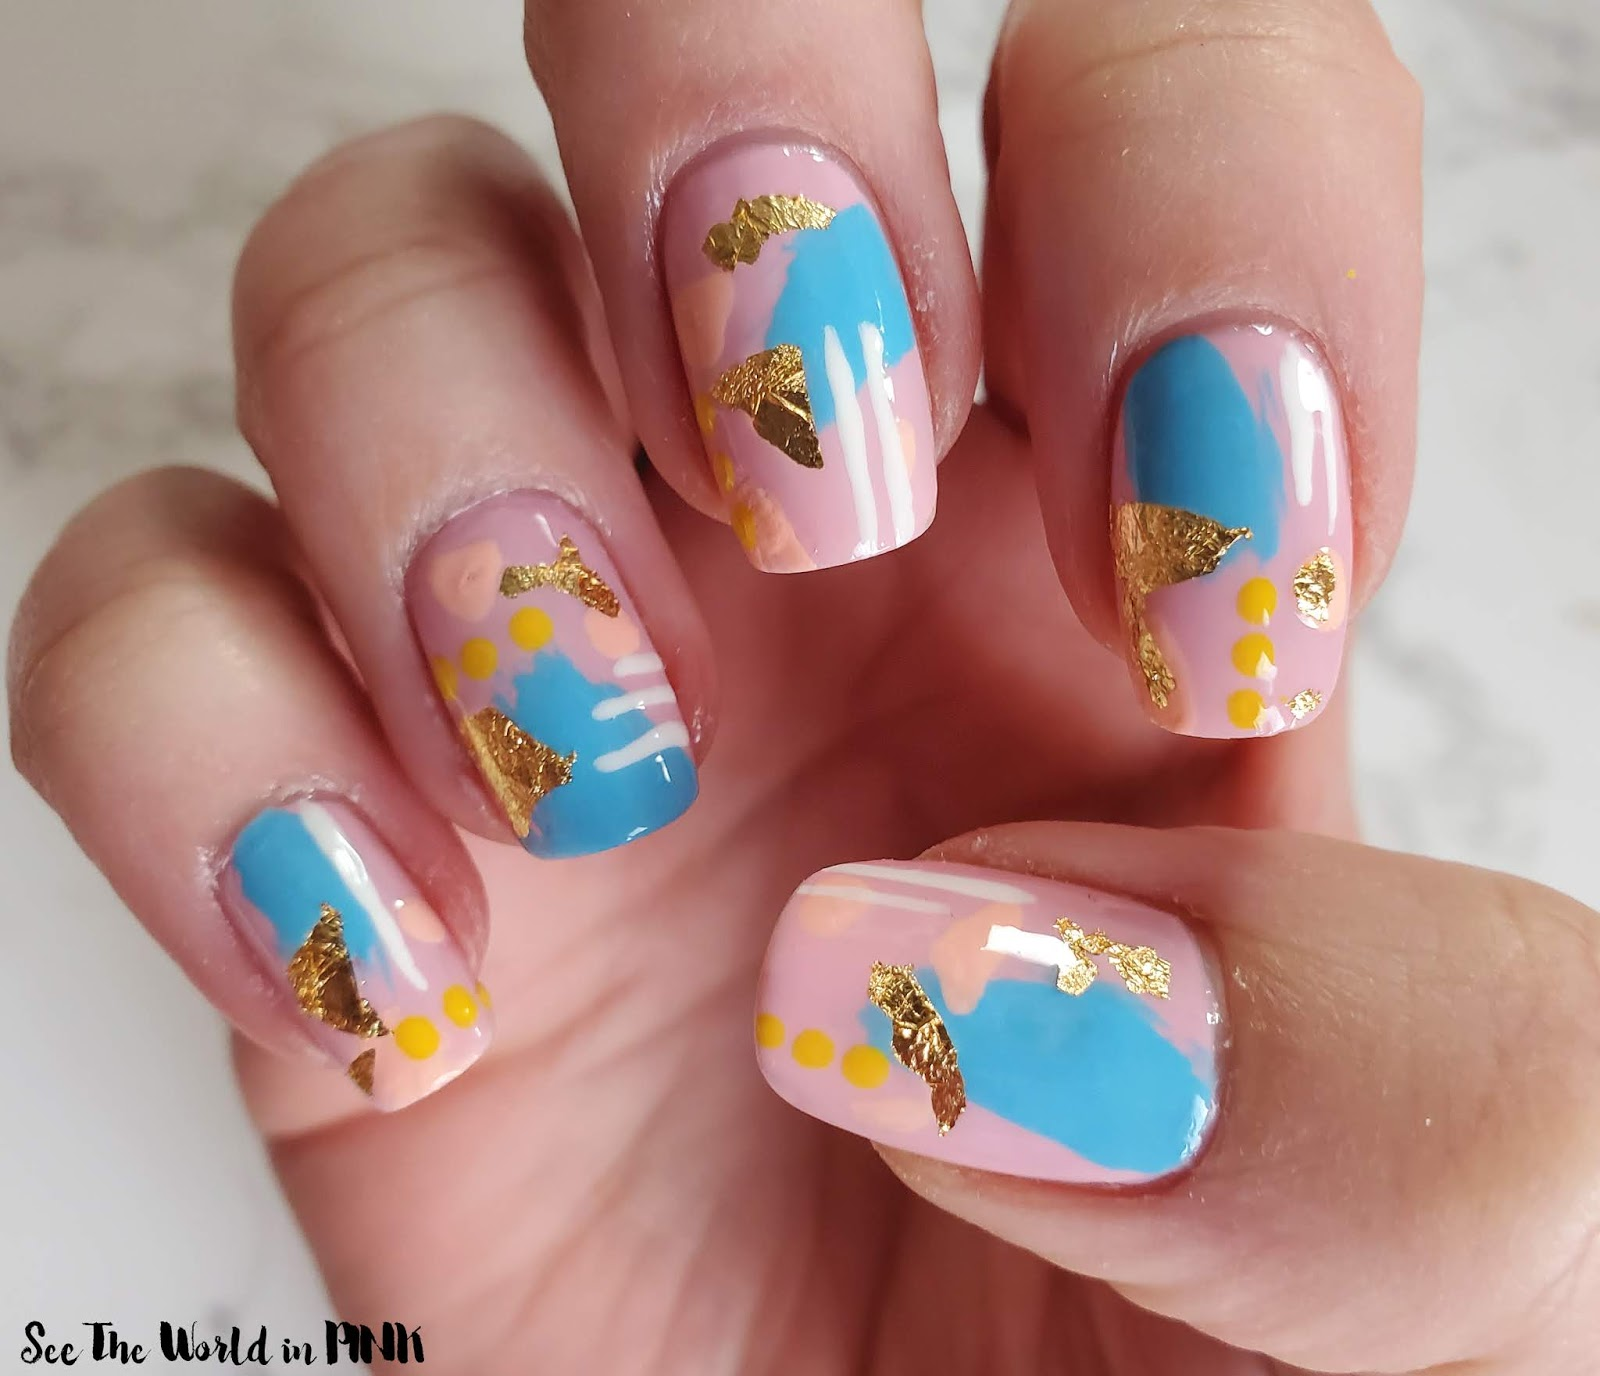 Manicure Monday - Pastel Abstract Nail Art